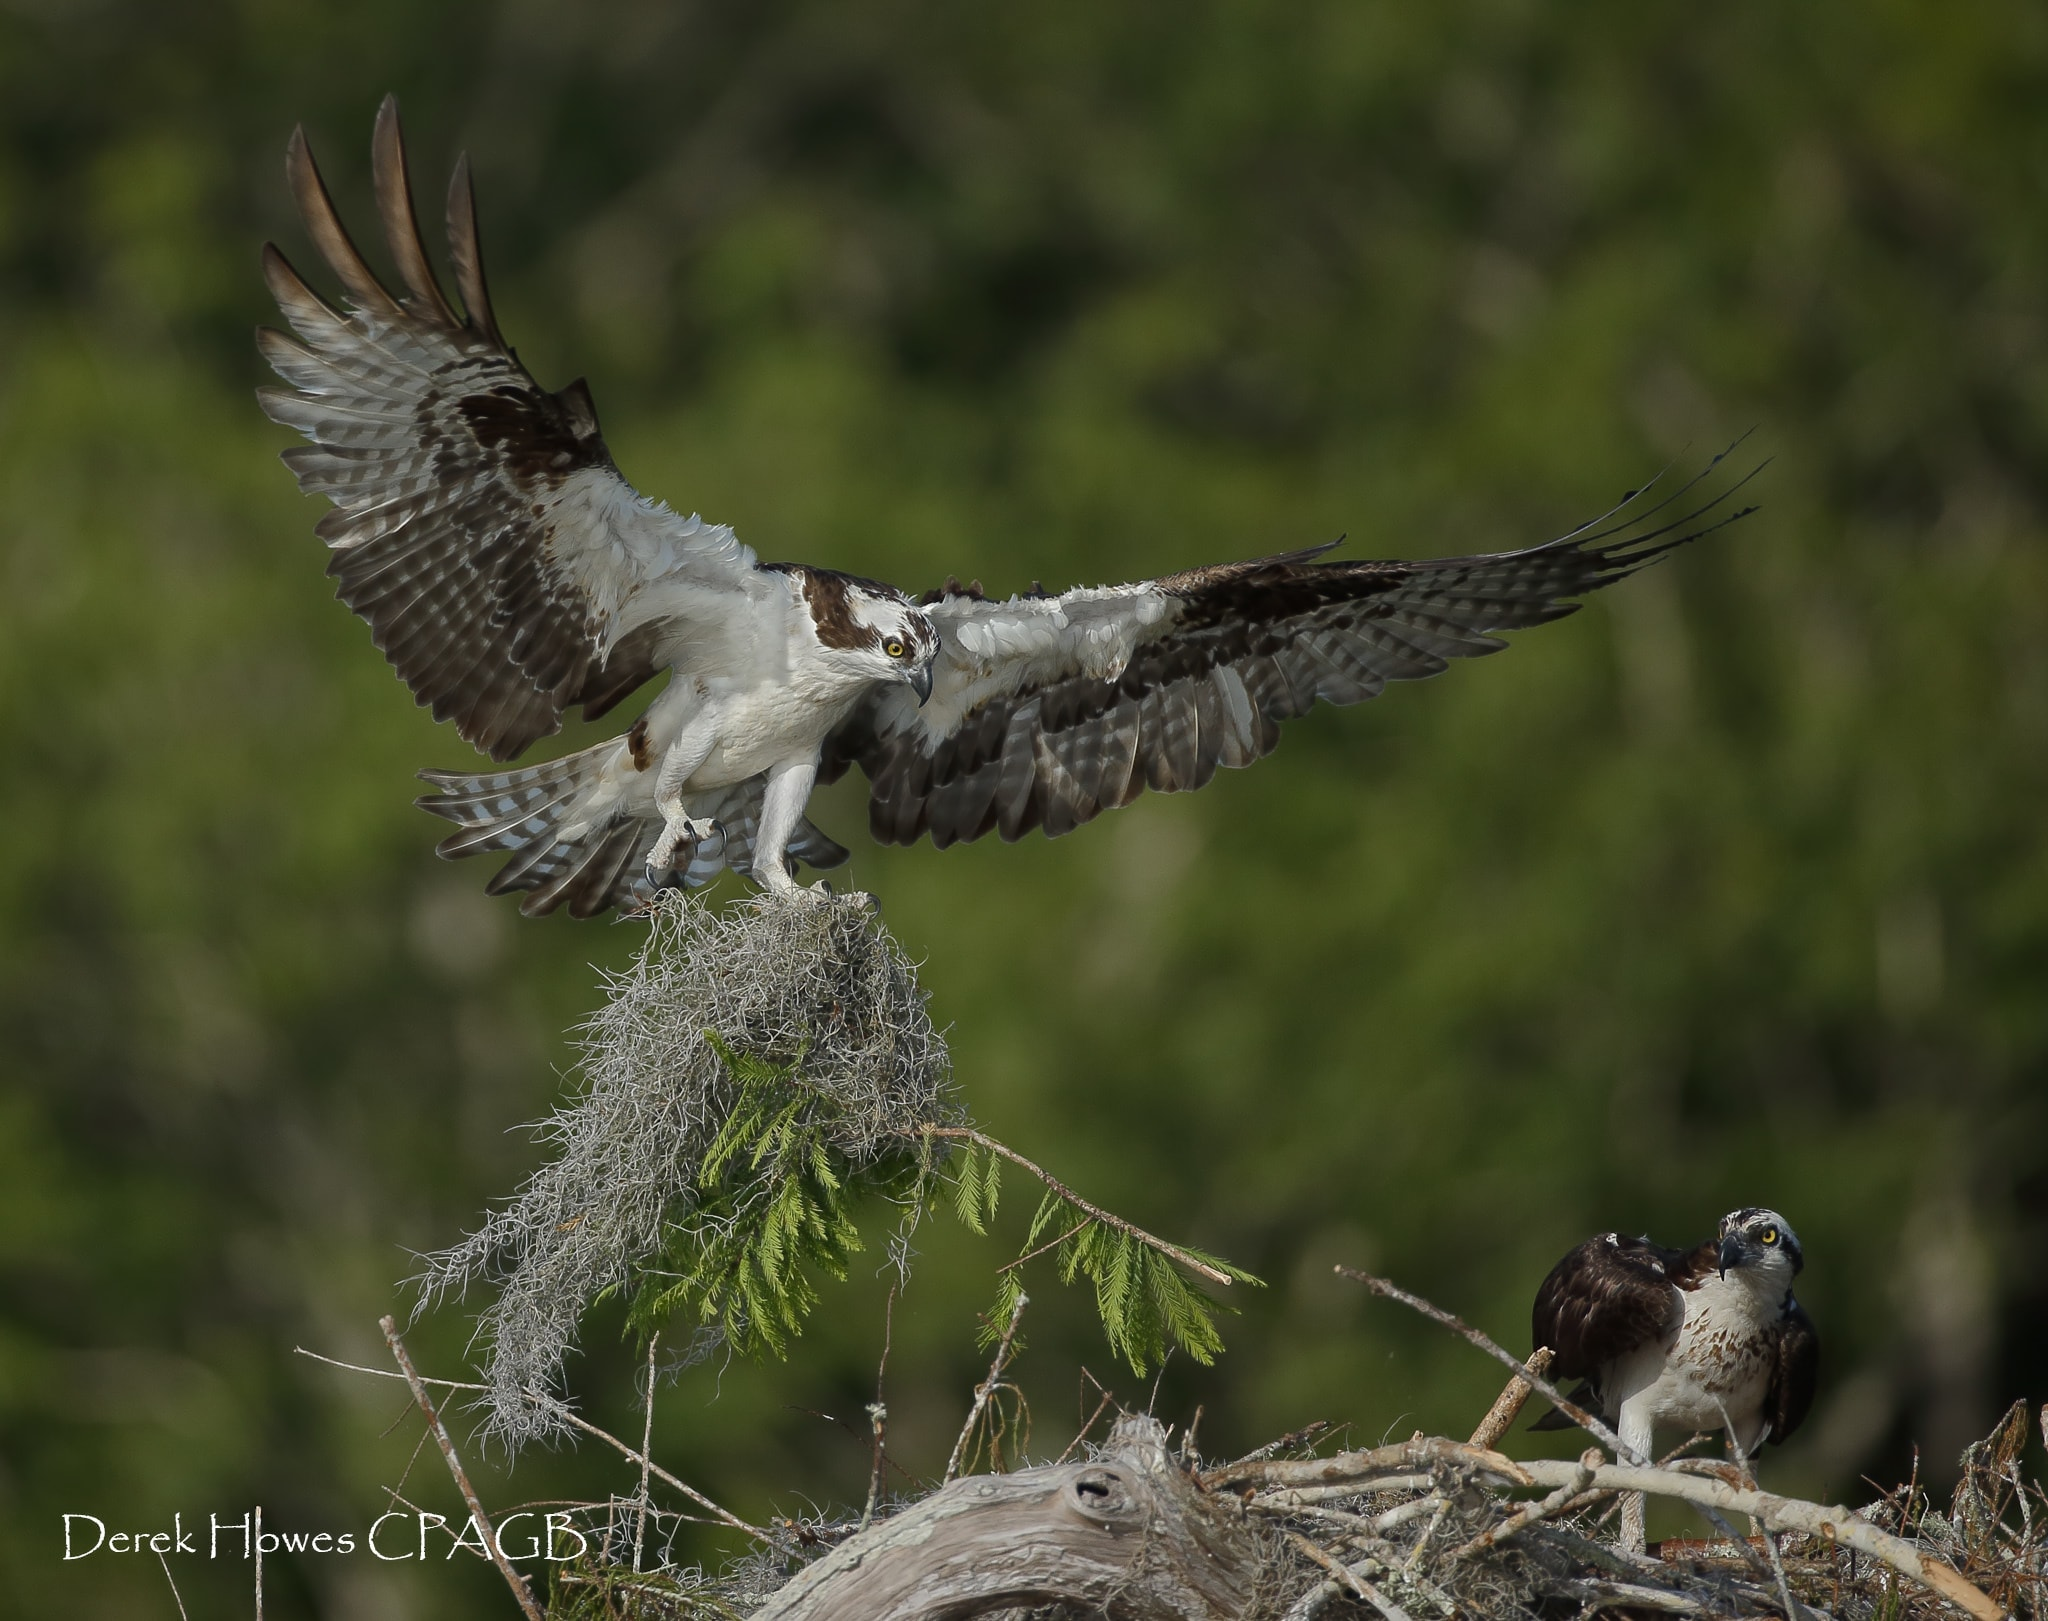 An osprey returns to the nest having gathered fresh material to line the nest - photographed on the NaturesLens Osprey Photography Holiday conducted in Florida during April 2016